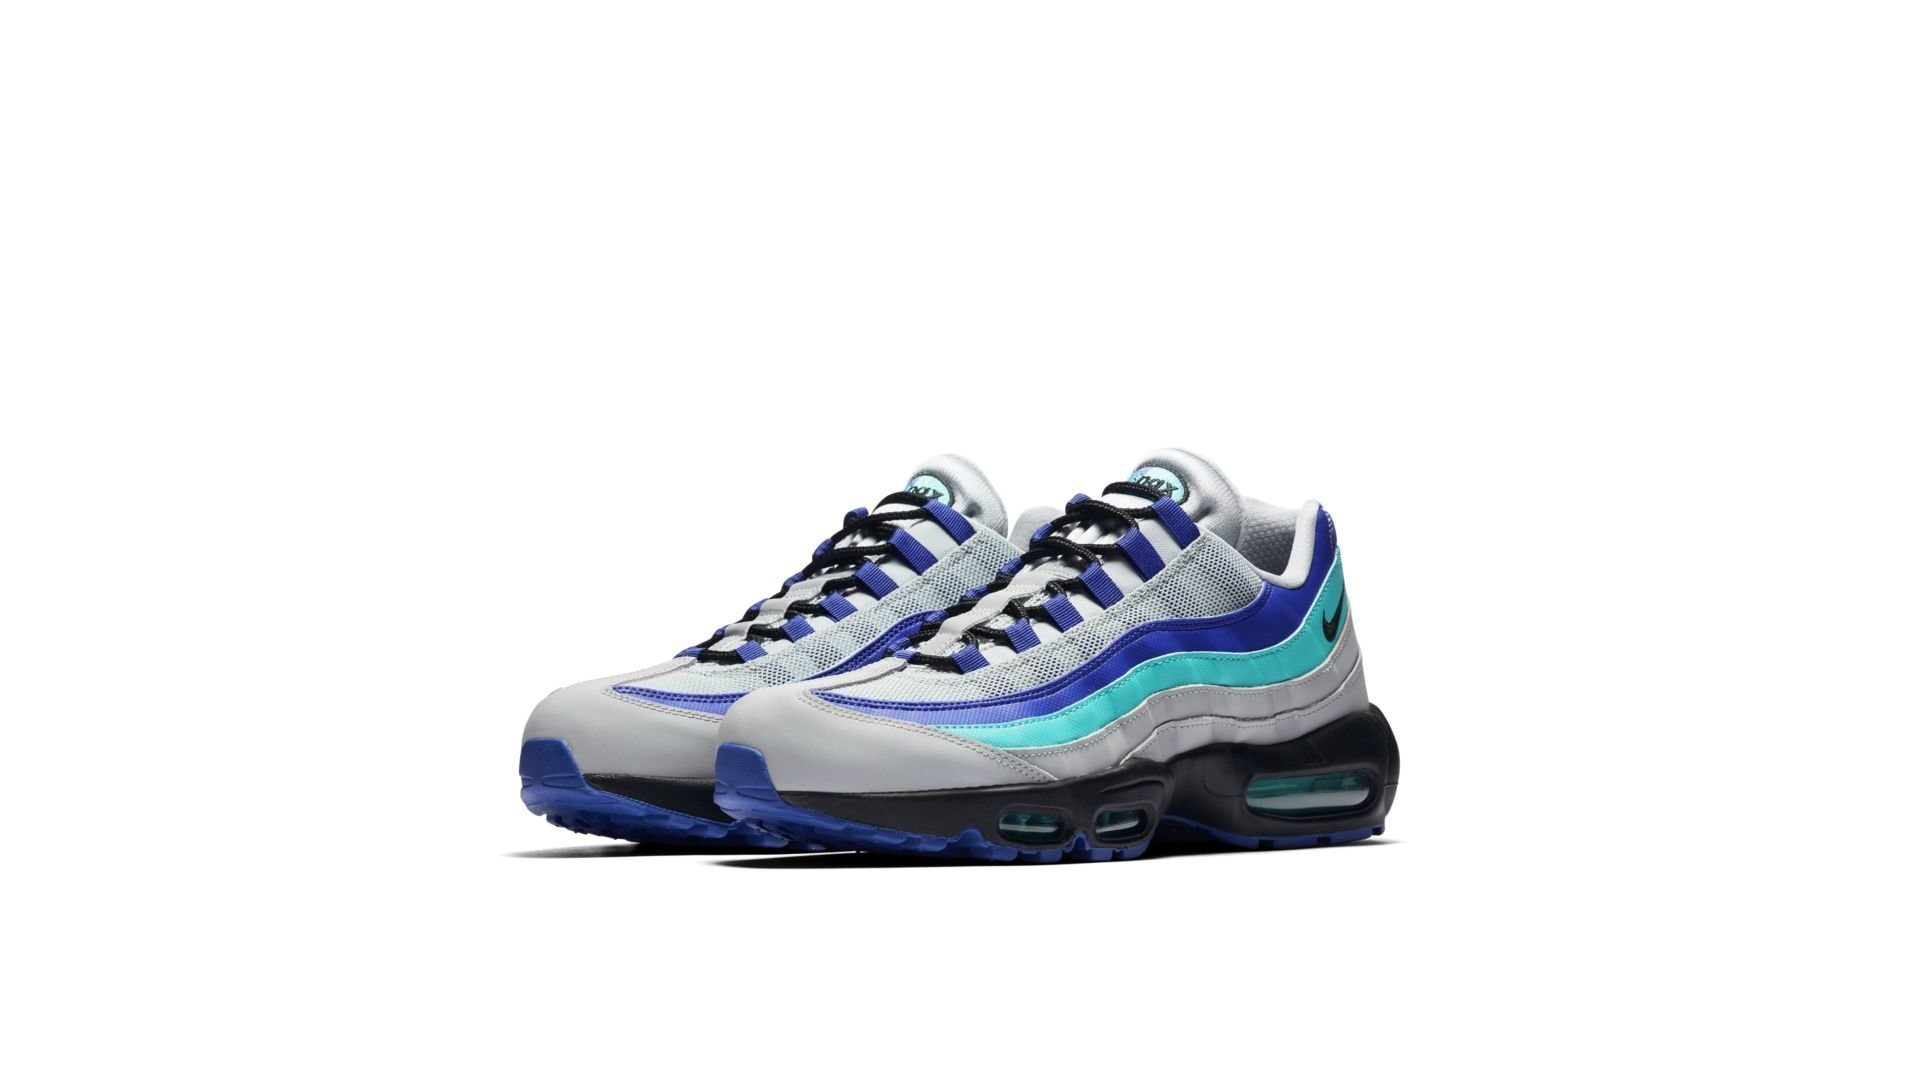 Nike Air Max 95 'Grey Grape' (AT2865-001)